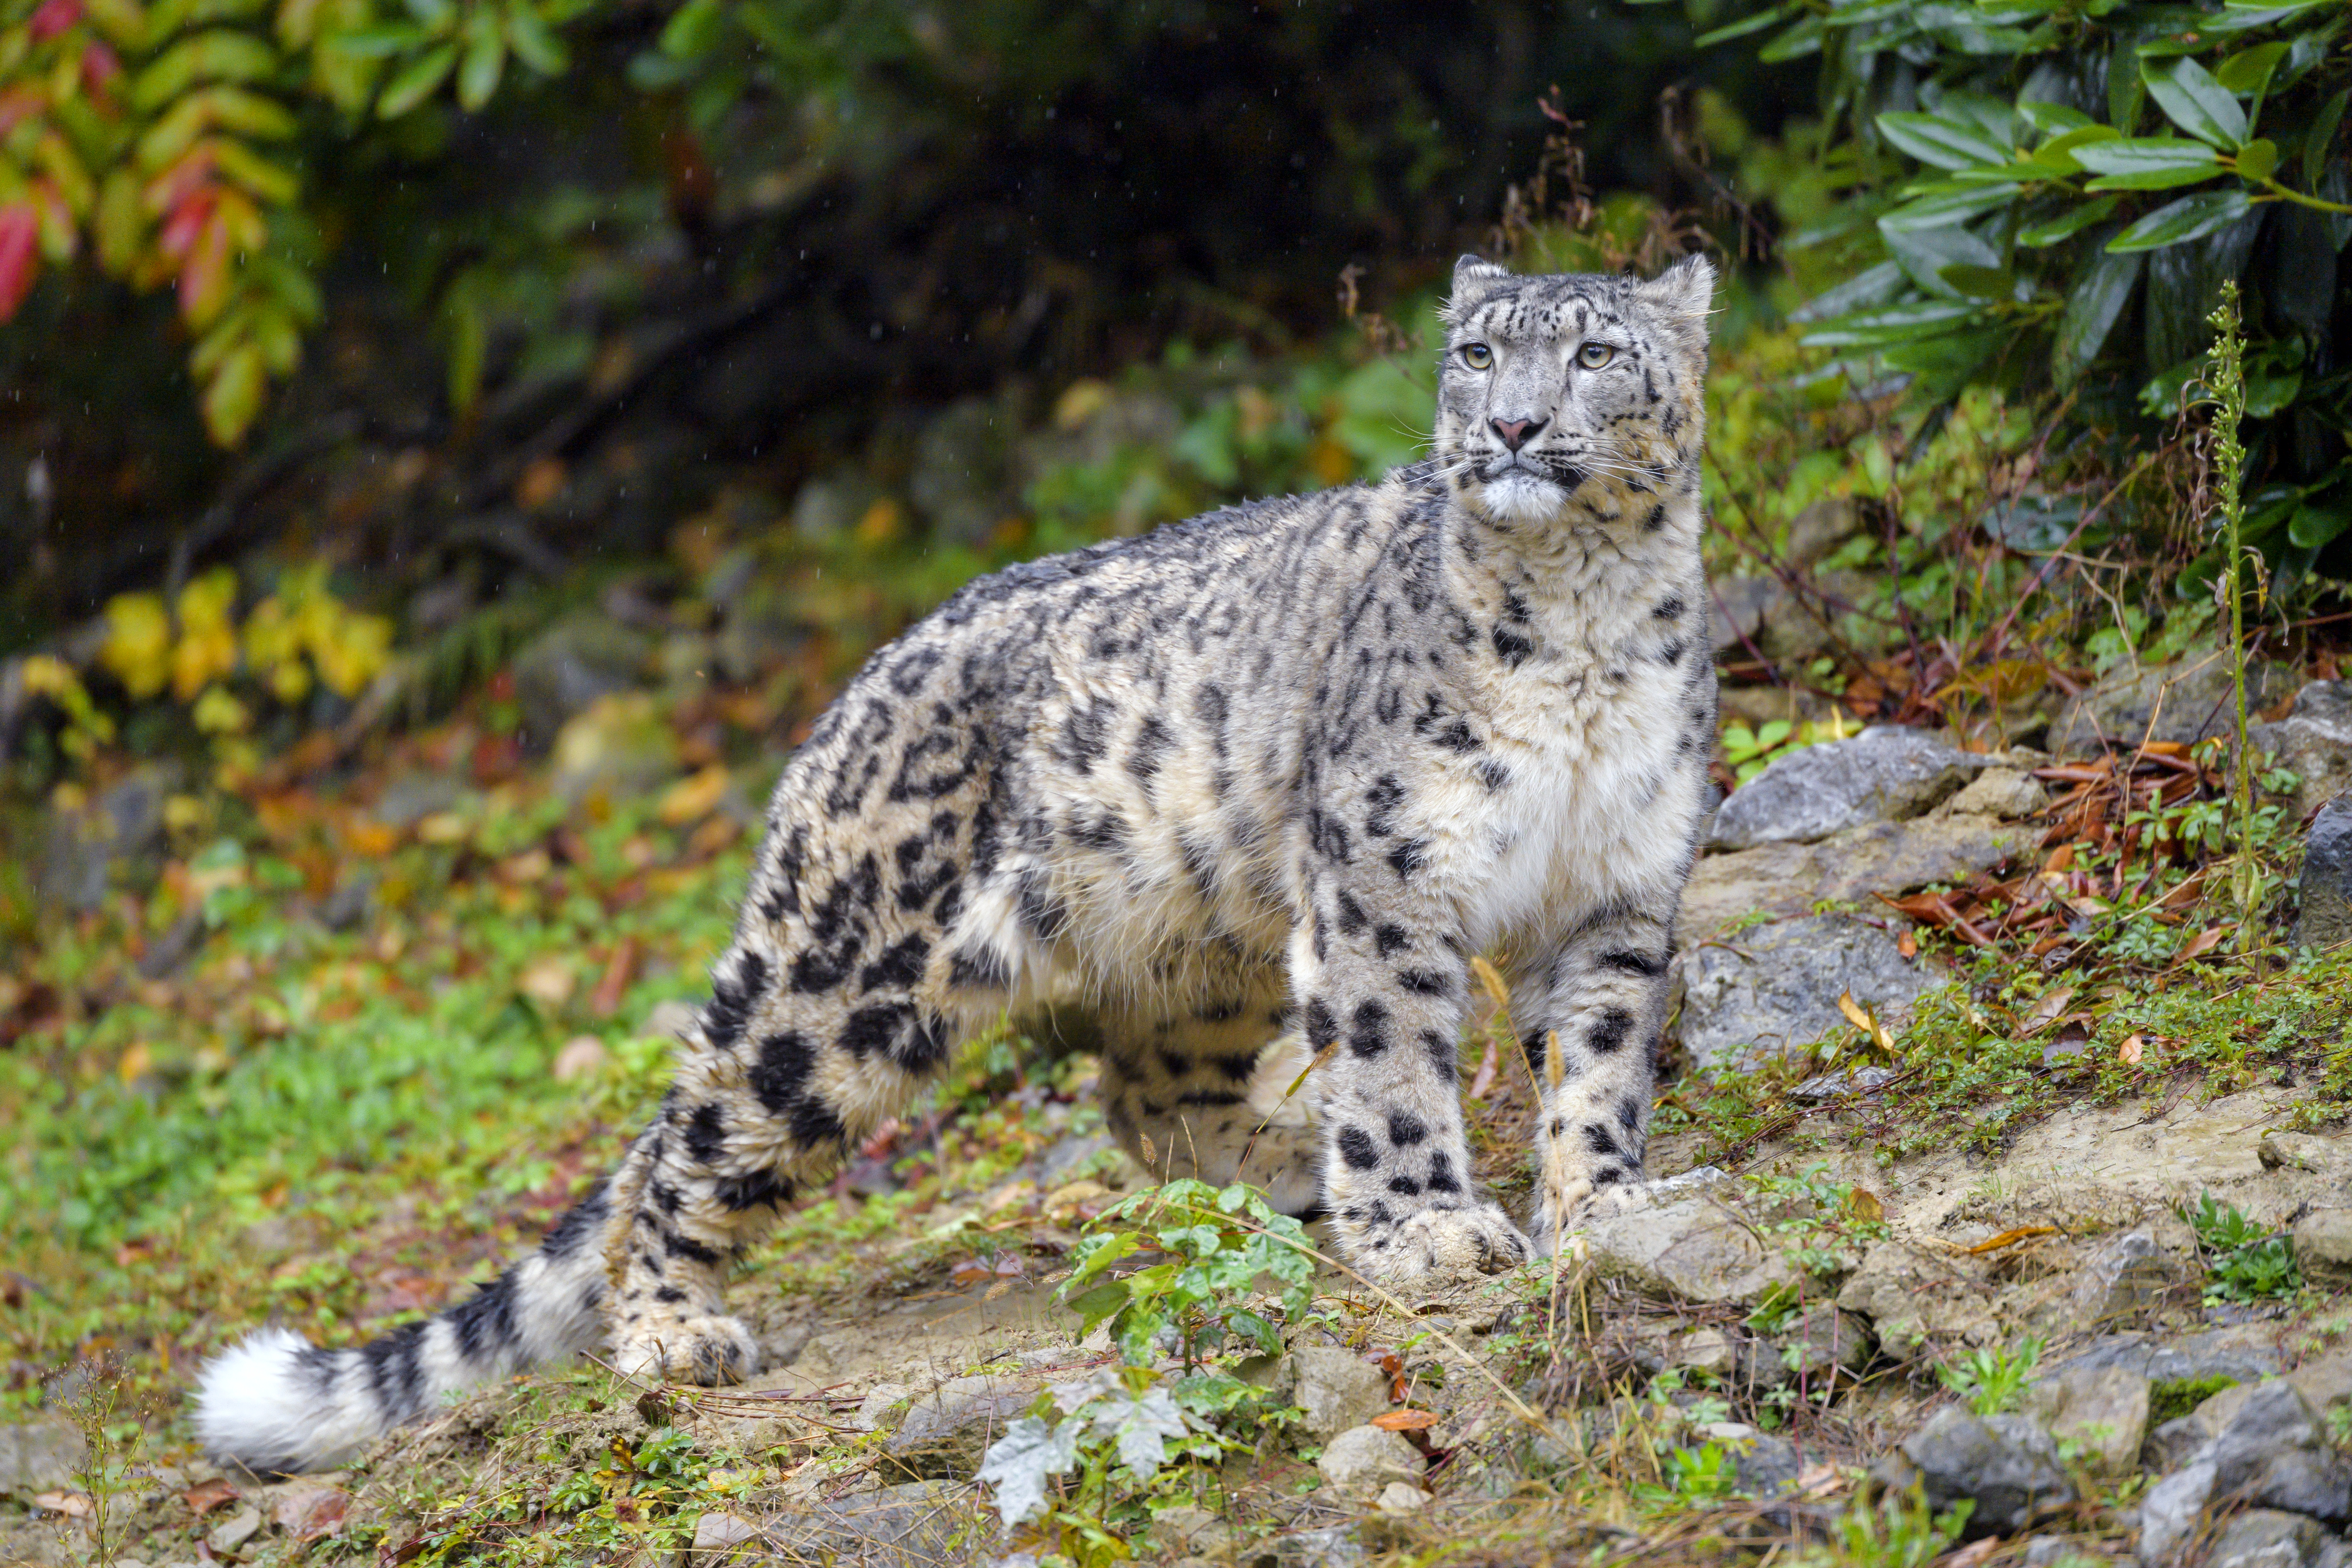 66441 download wallpaper Animals, Irbis, Big Cat, Predator, Wildlife, Snow Leopard screensavers and pictures for free